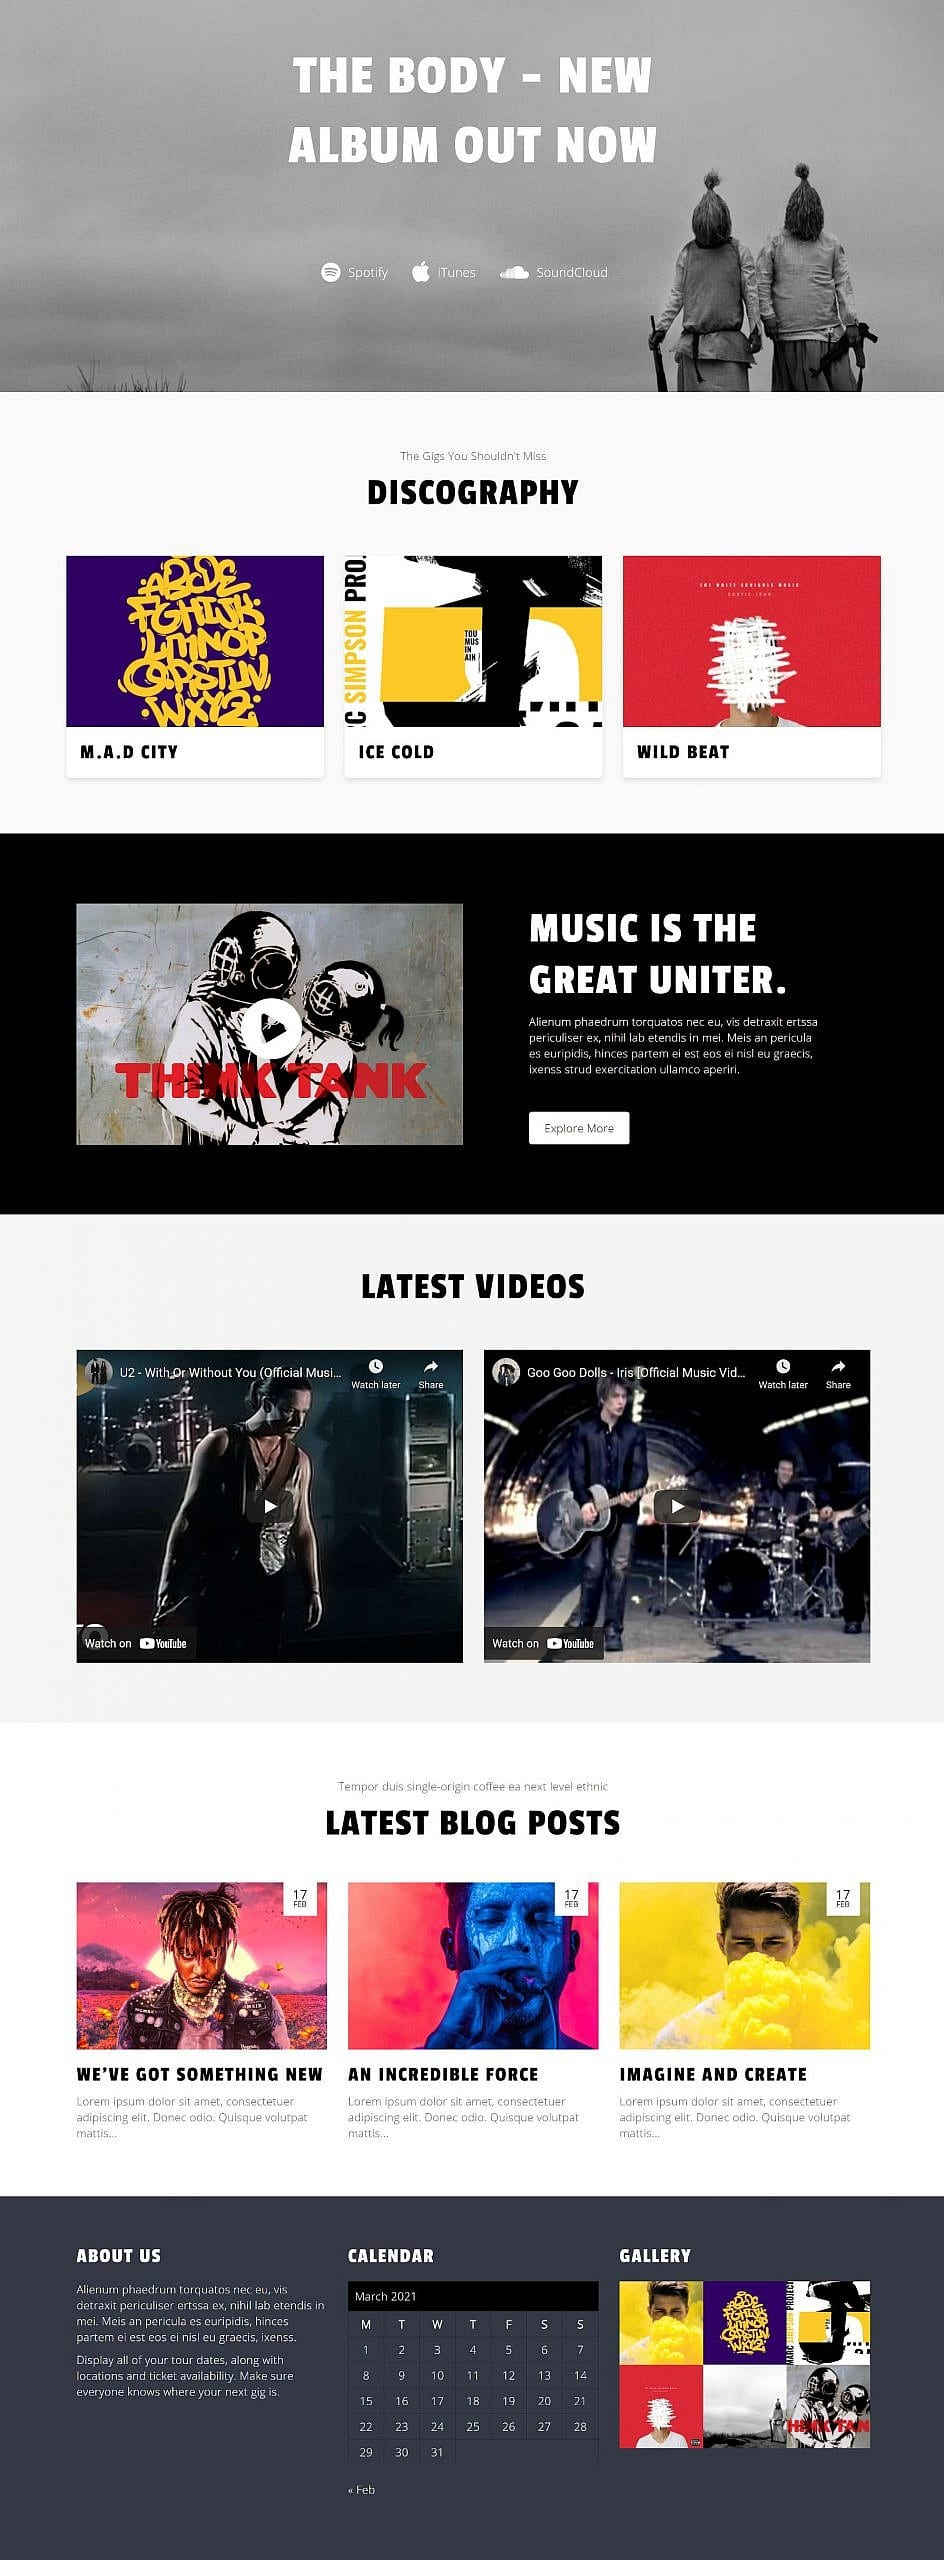 recreating-the-music-artist-wordpress-theme-homepage-with-the-block-editor Recreating the Music Artist WordPress Theme Homepage With the Block Editor